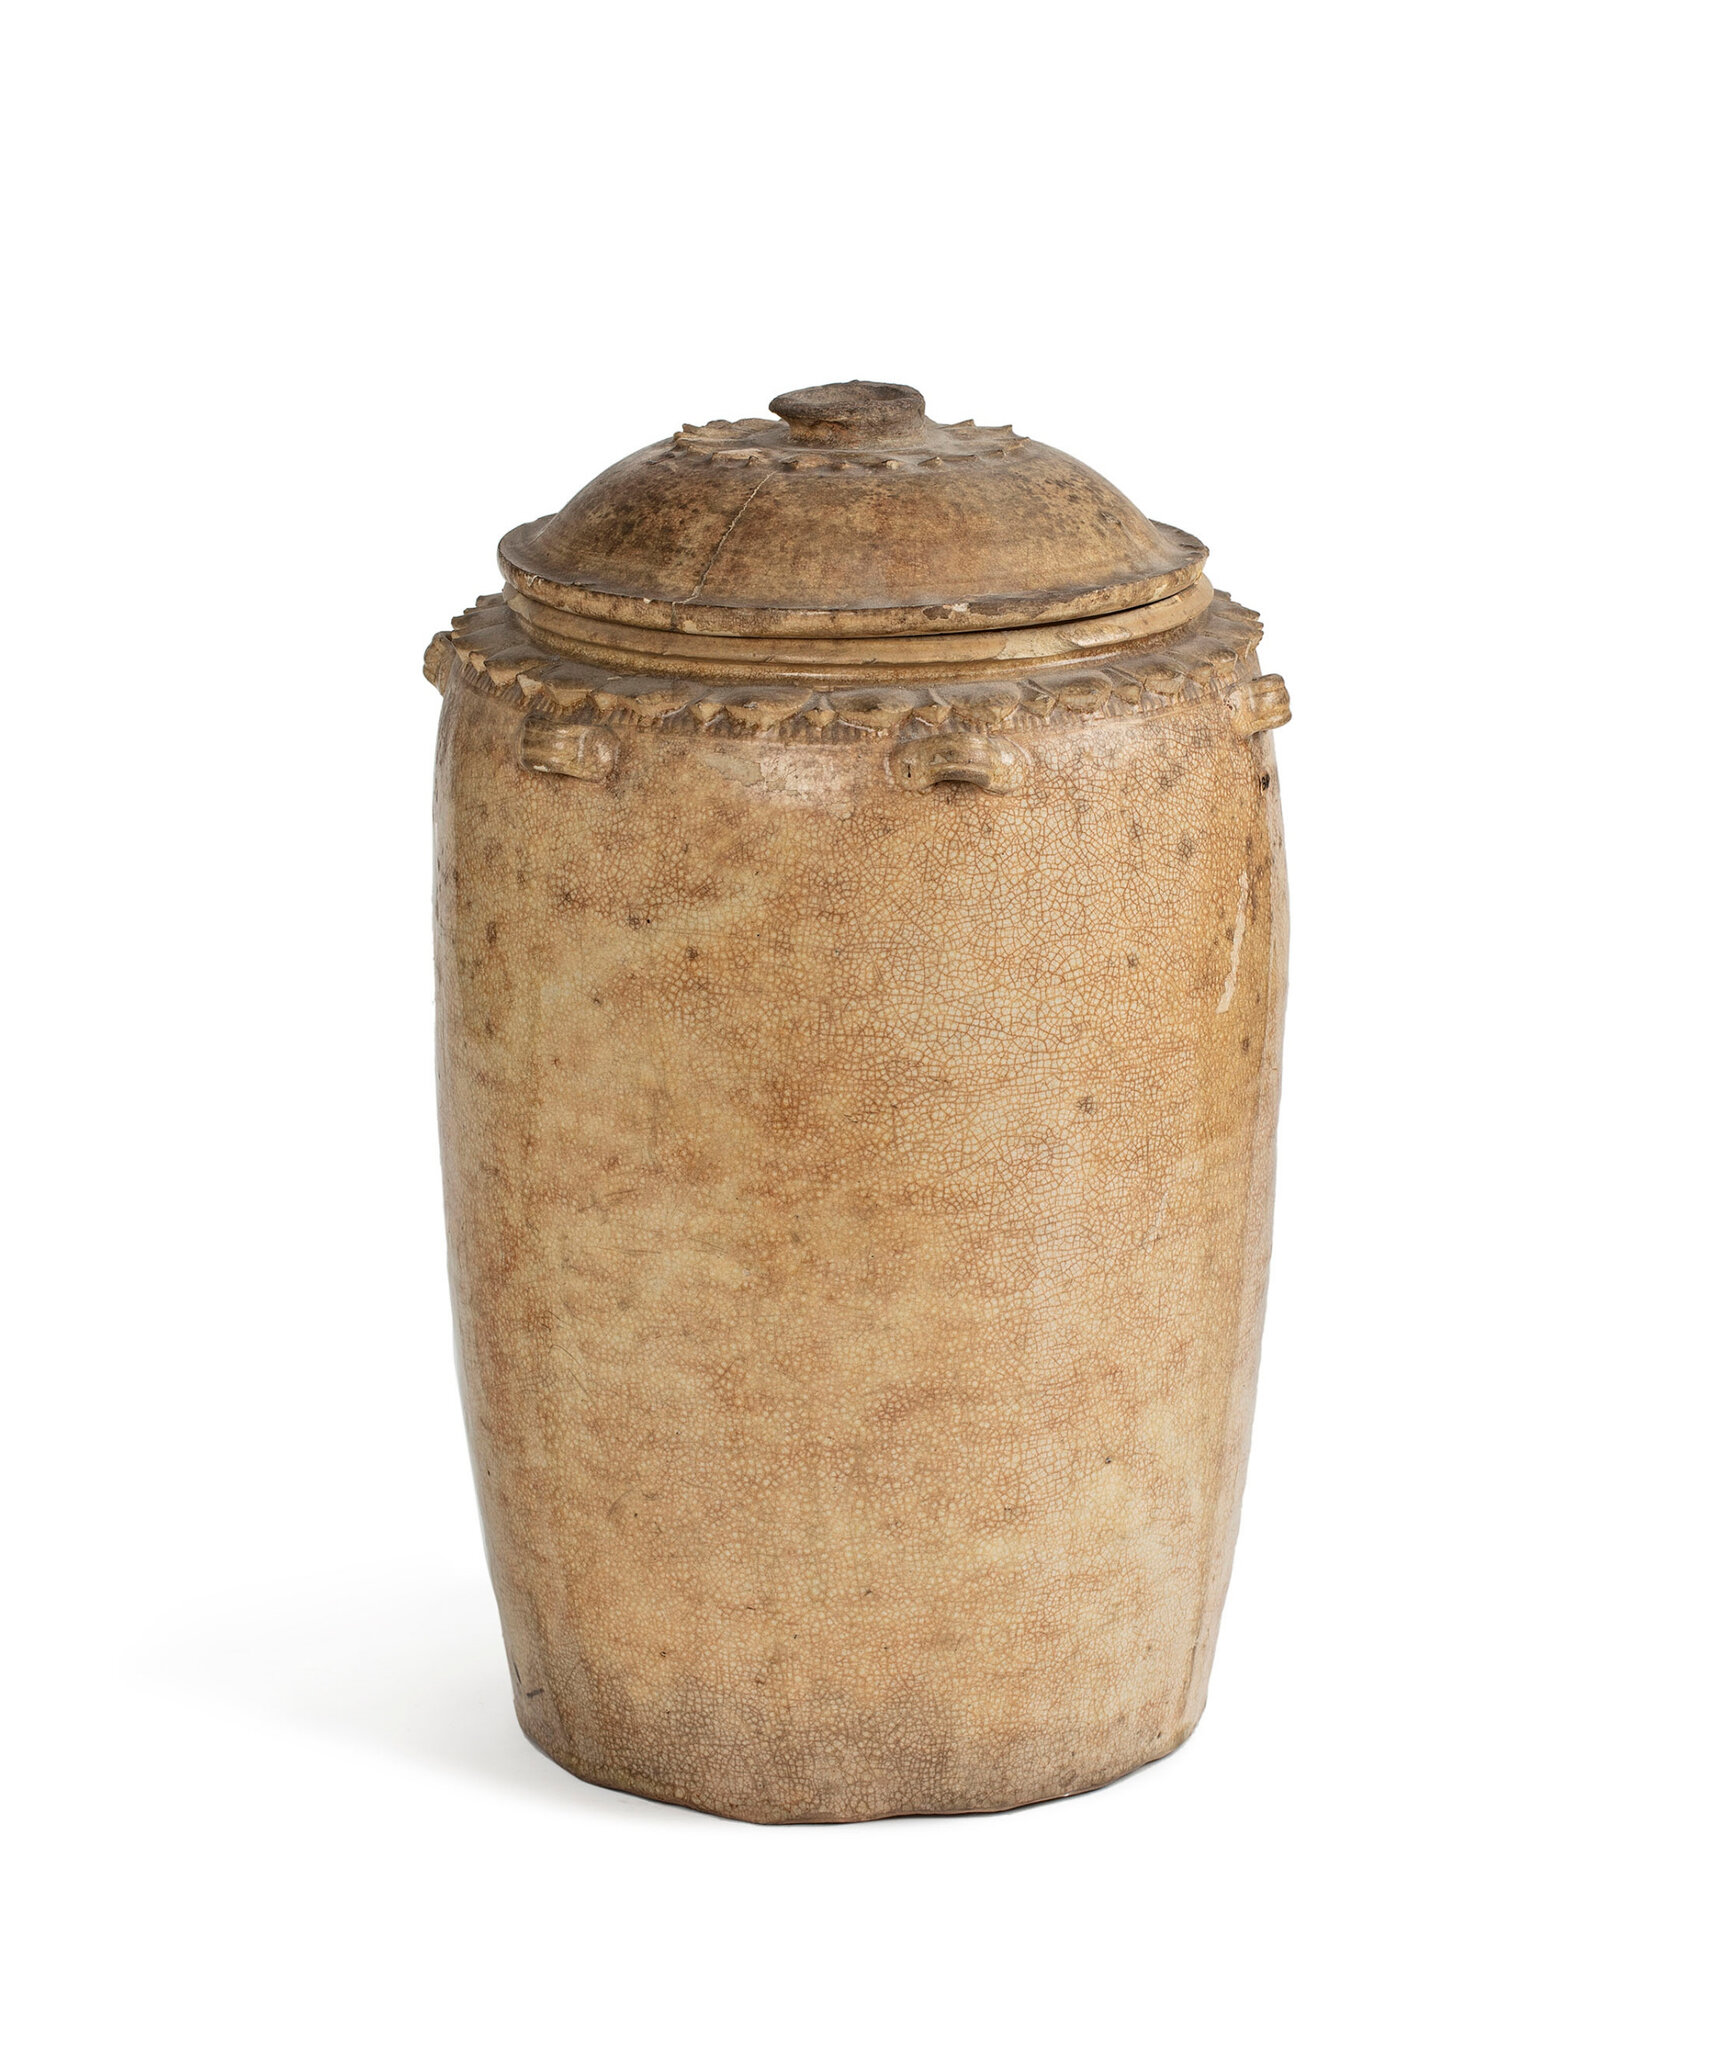 A Vietnamese ceramic storage jar and cover, Ly dynasty, 13th century